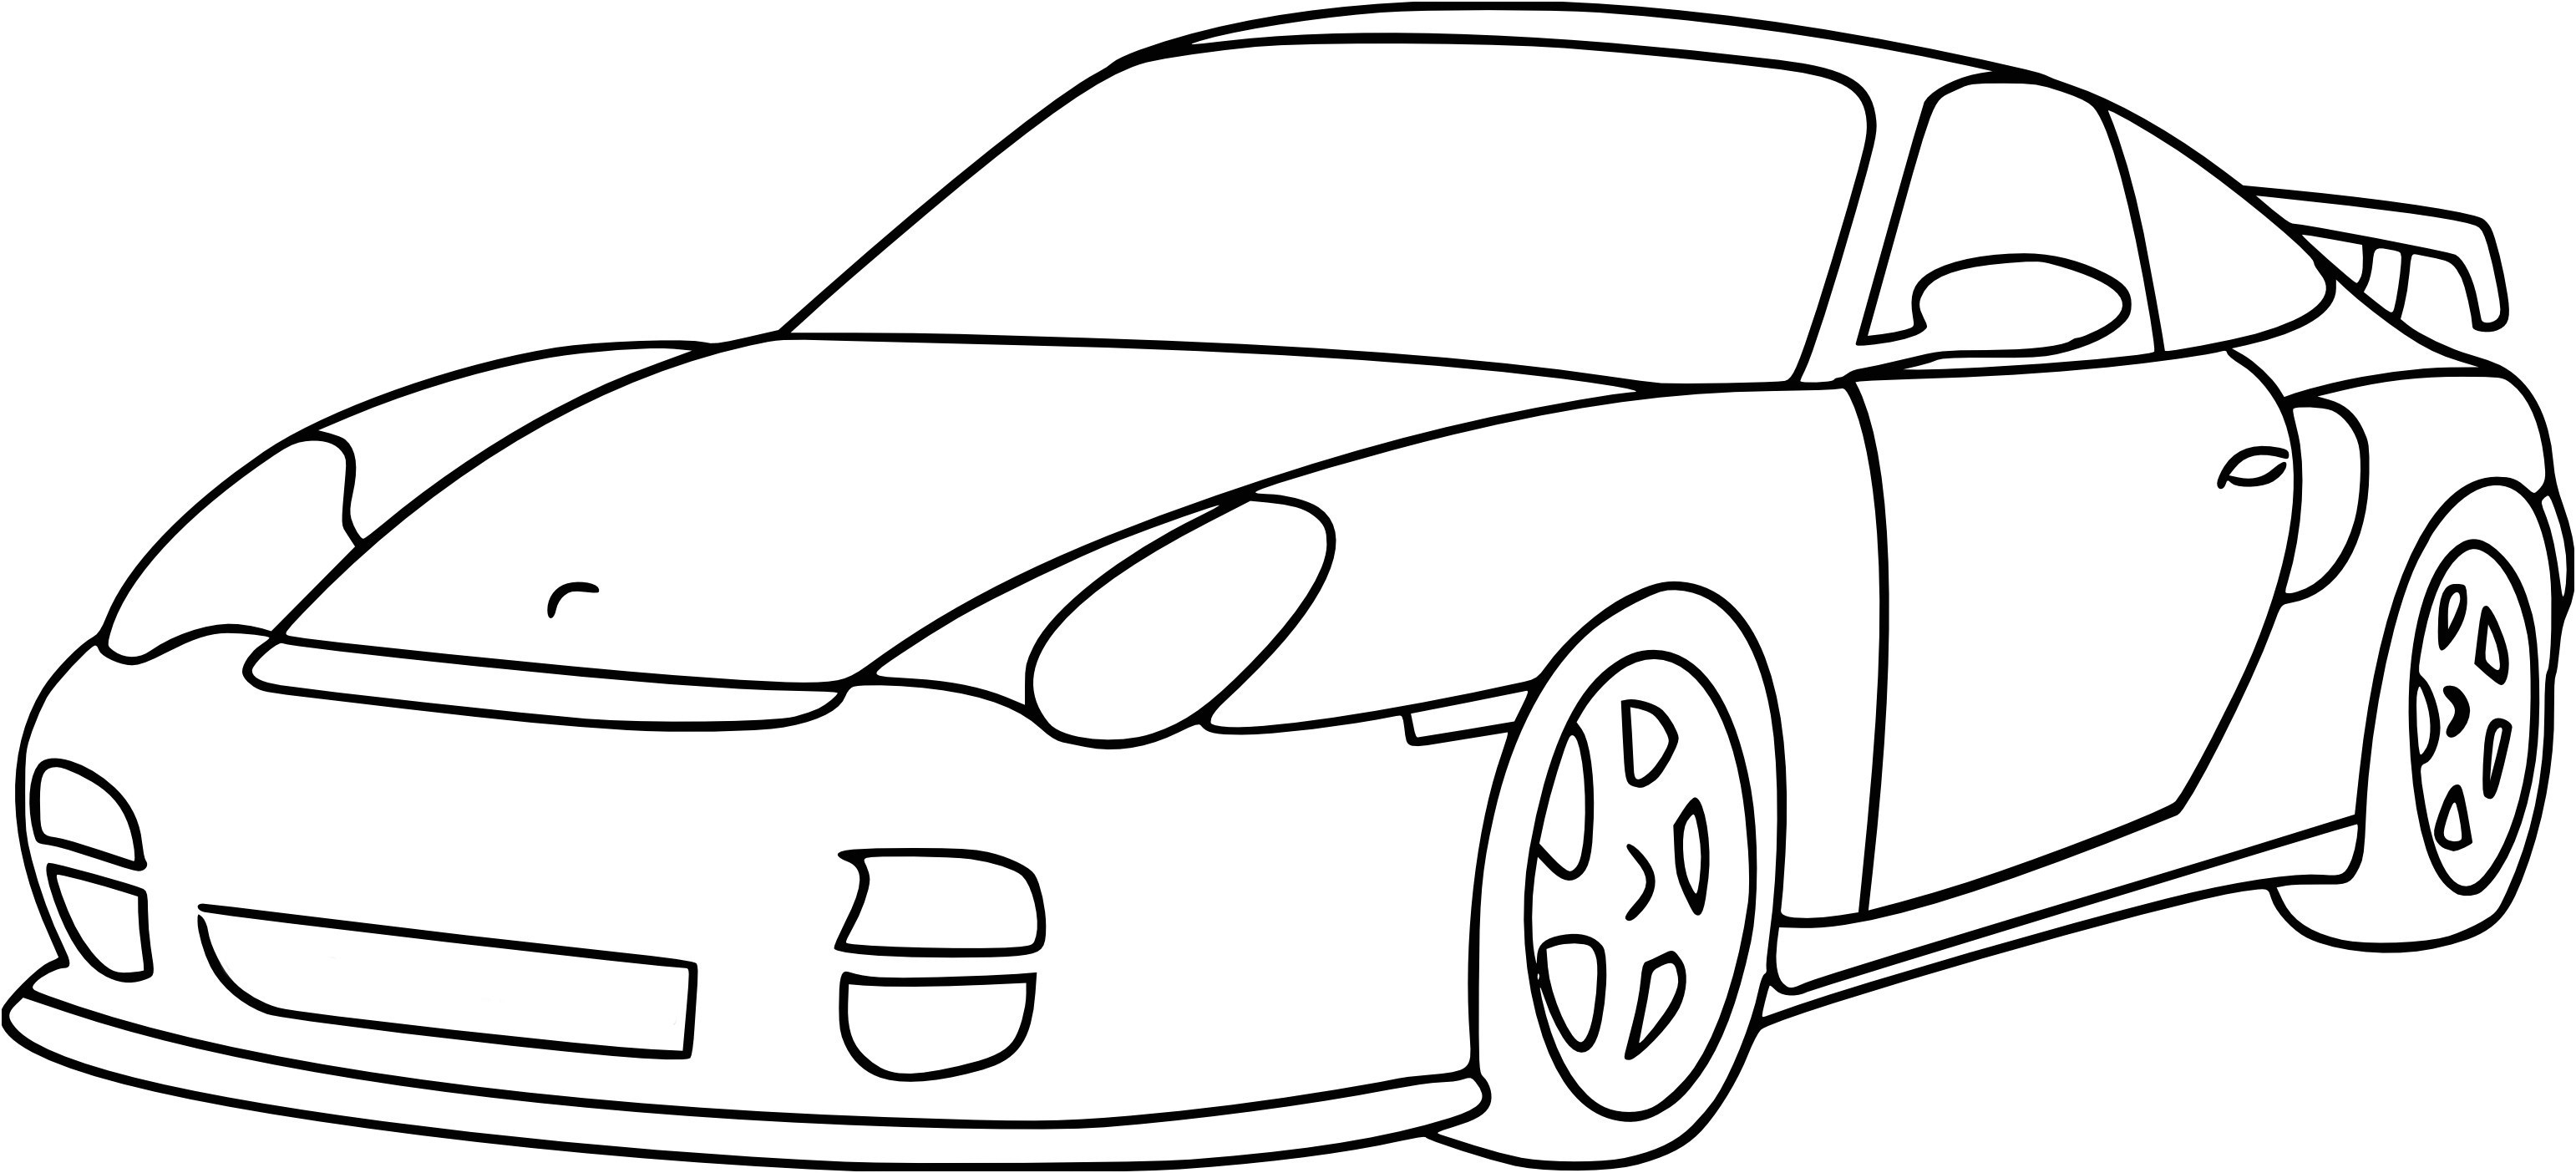 Coloriage Voiture Fast And Furious - GreatestColoringBook.com